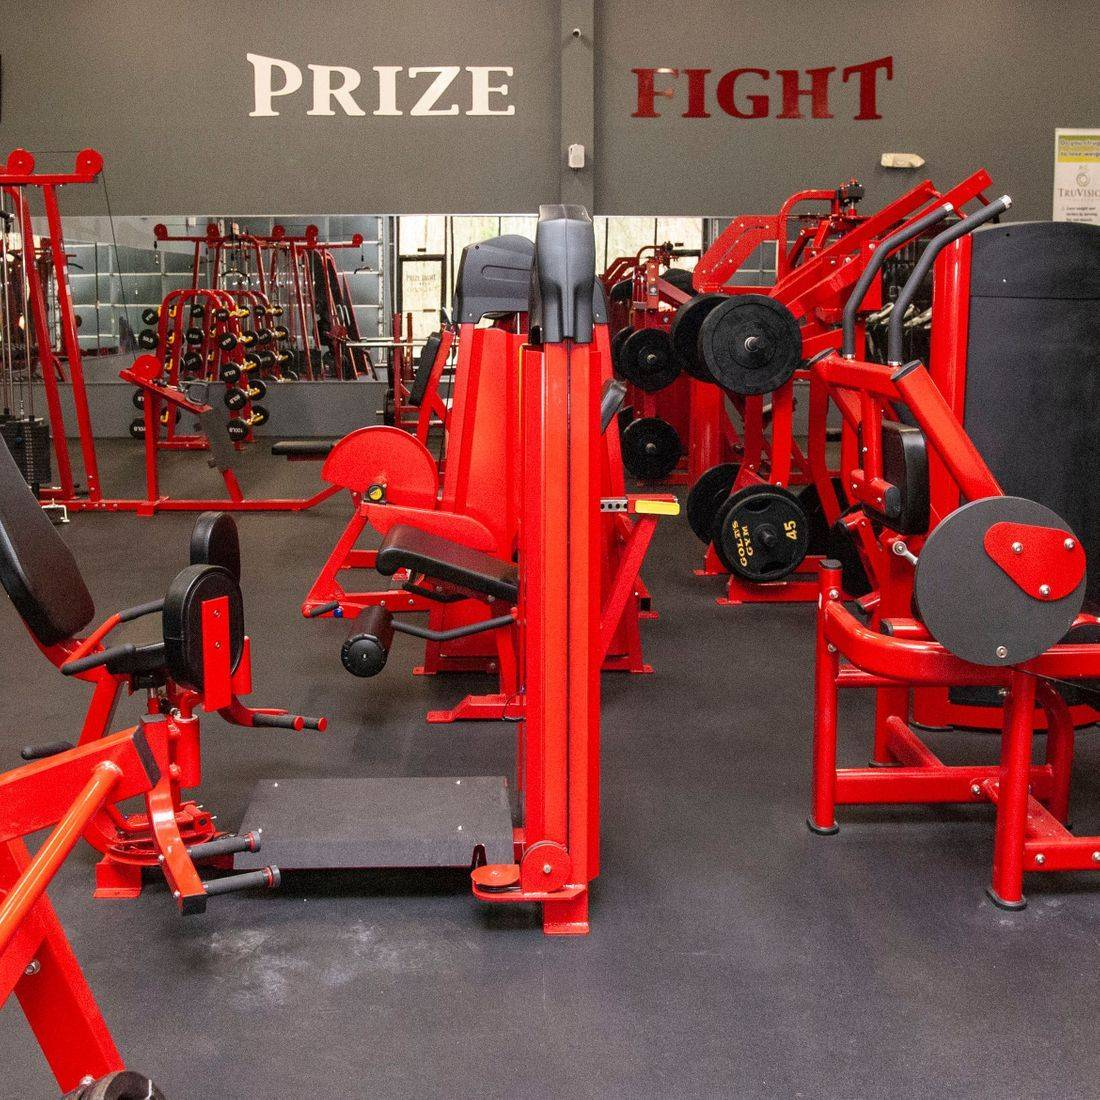 Prize Fight Fitness Silerback Strength gym equipment